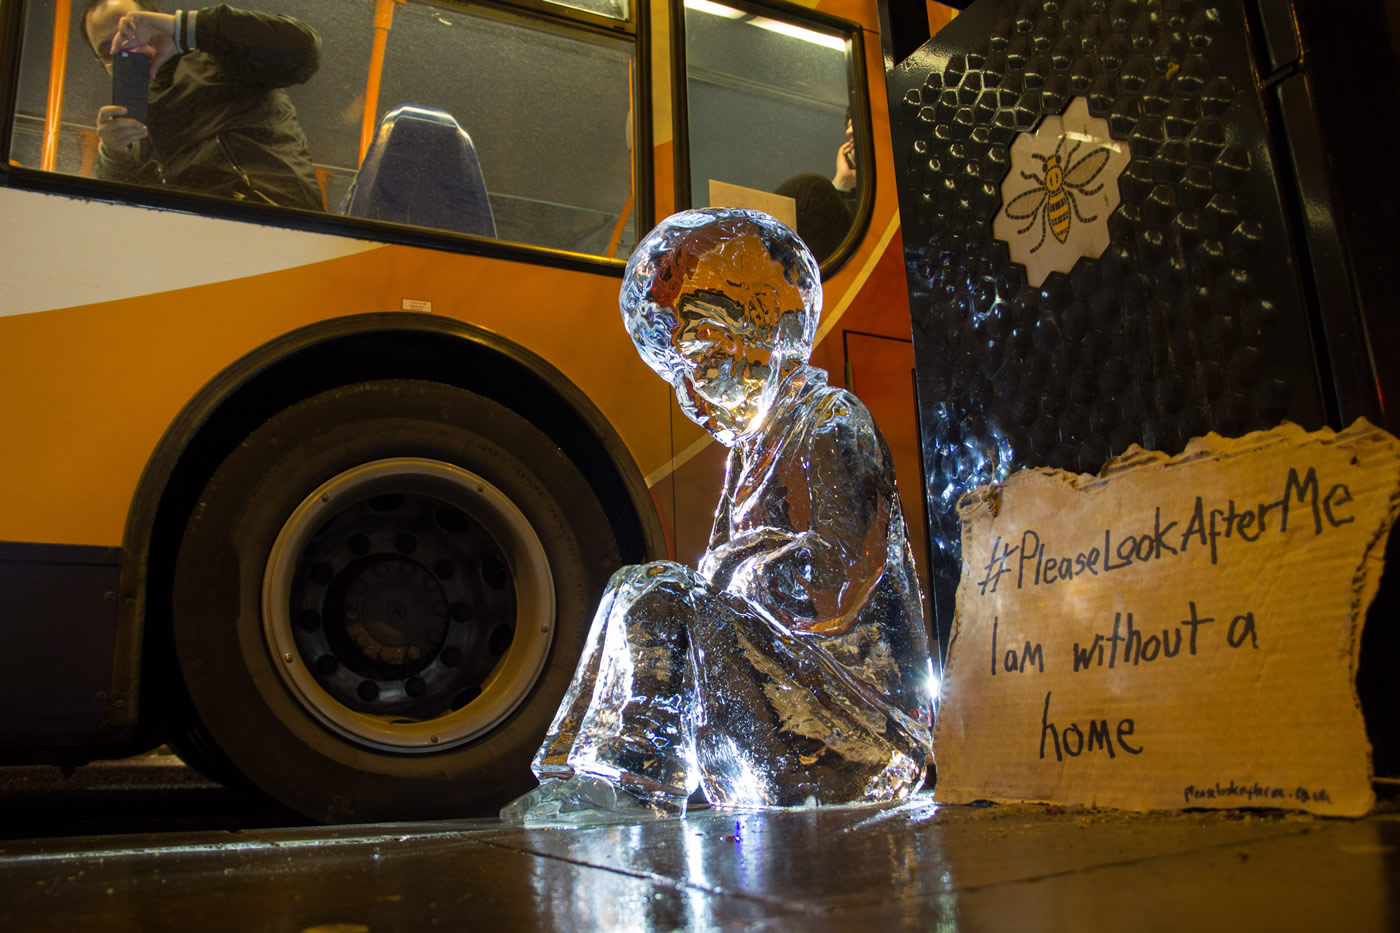 One of the ice sculptures placed outside the Manchester